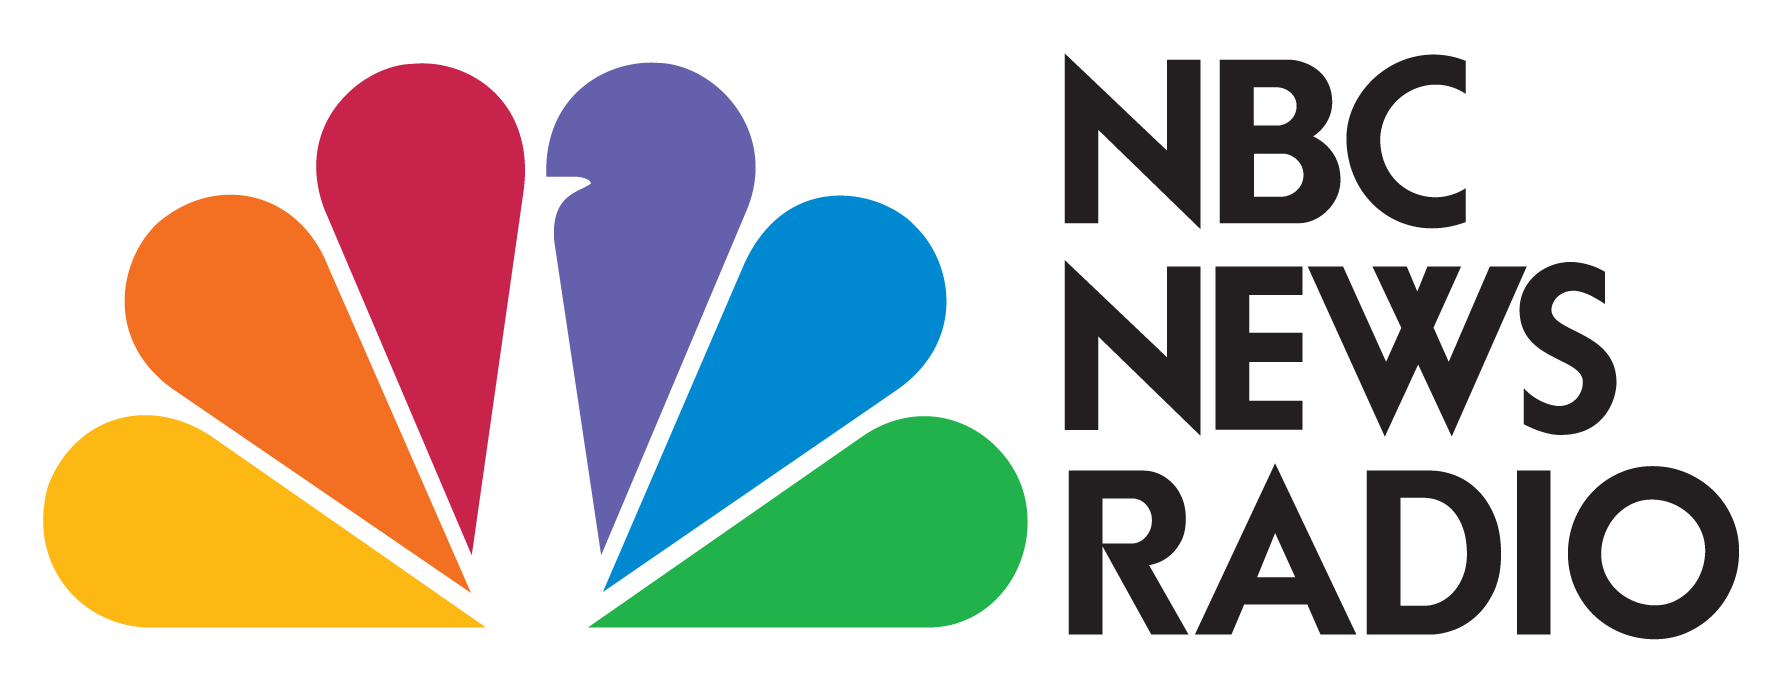 Broadcasting company national nbc nbc teen